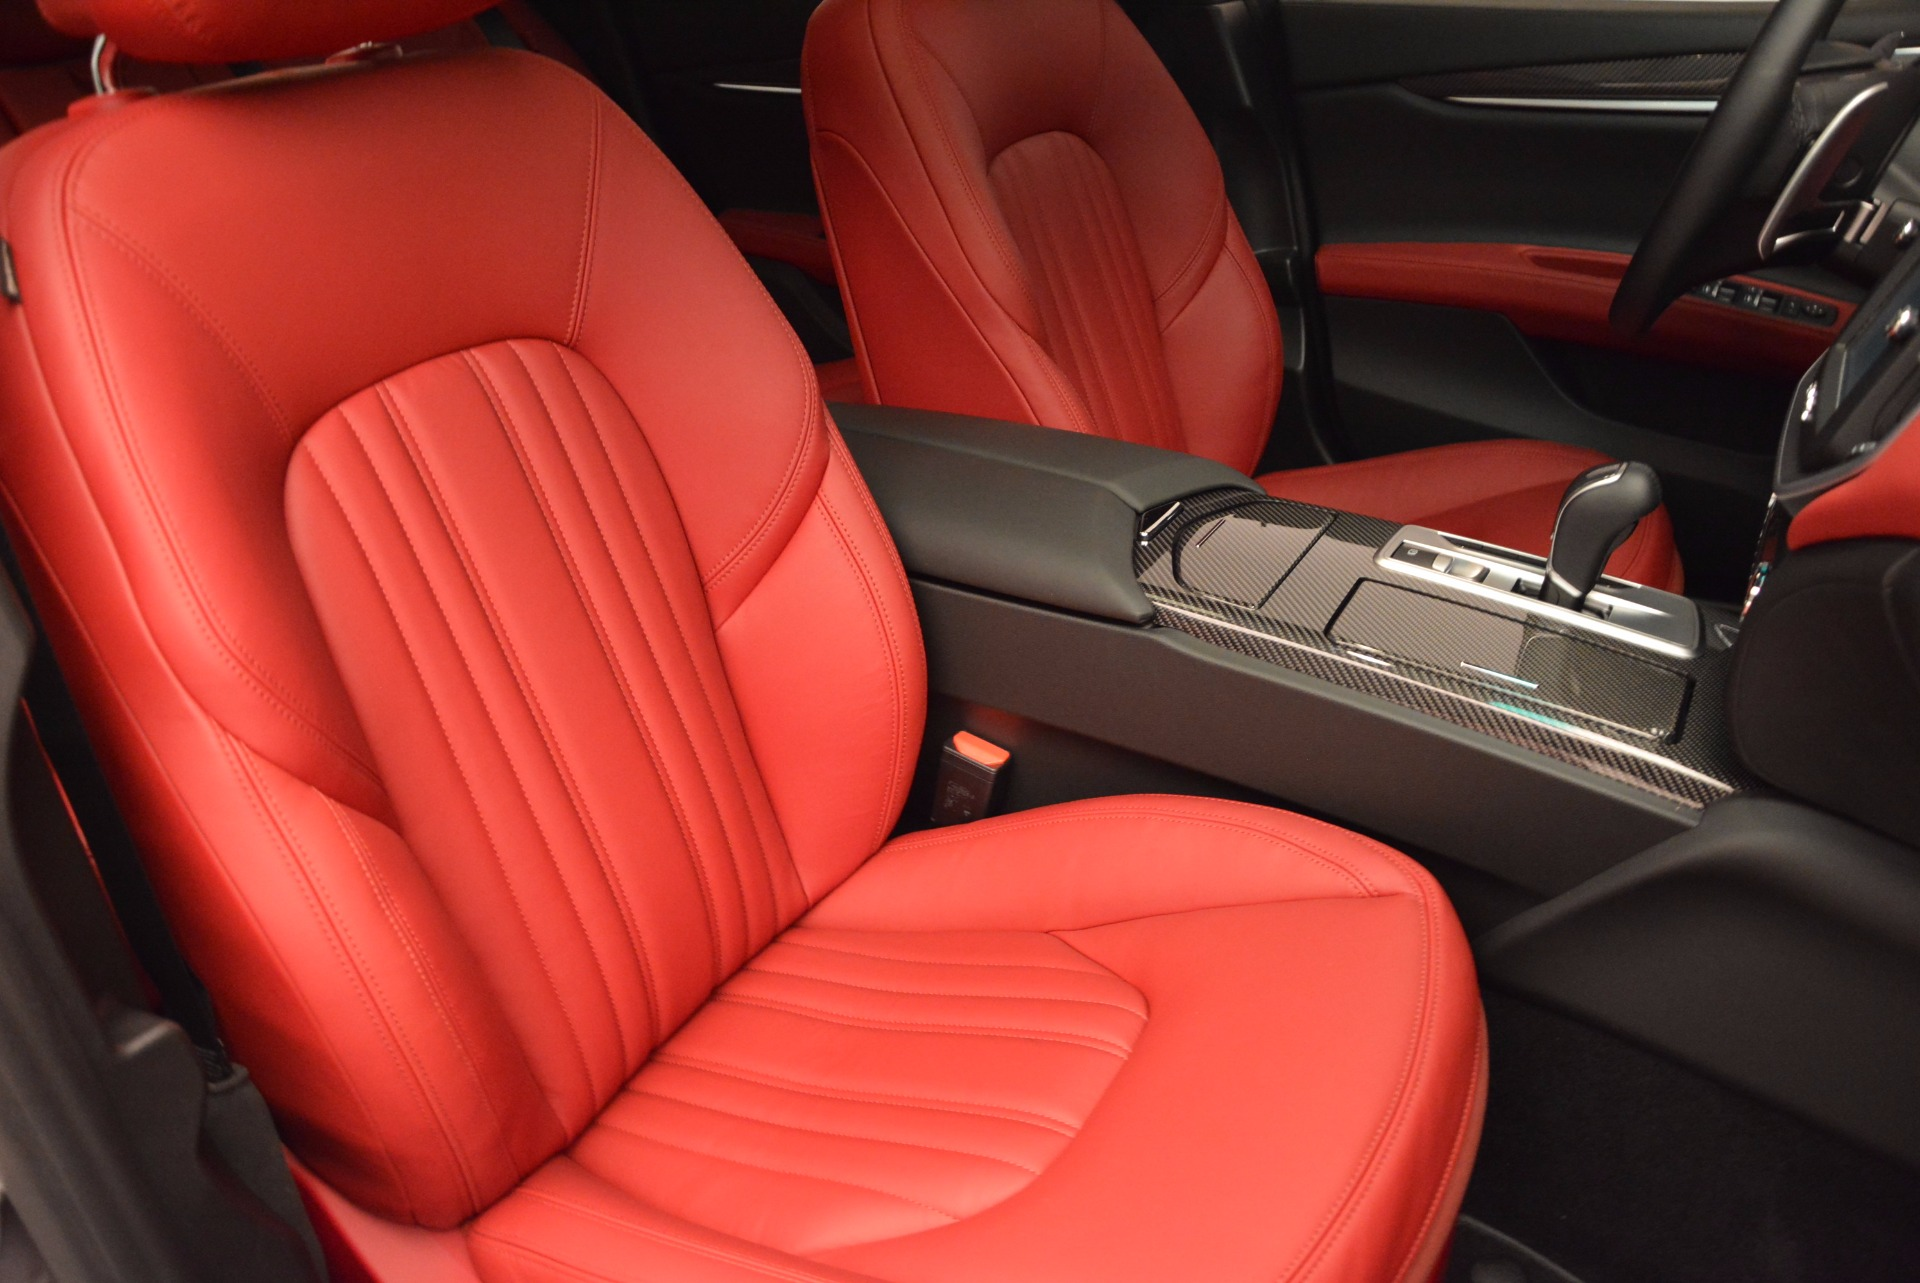 Used 2015 Maserati Ghibli S Q4 For Sale In Westport, CT 1290_p22